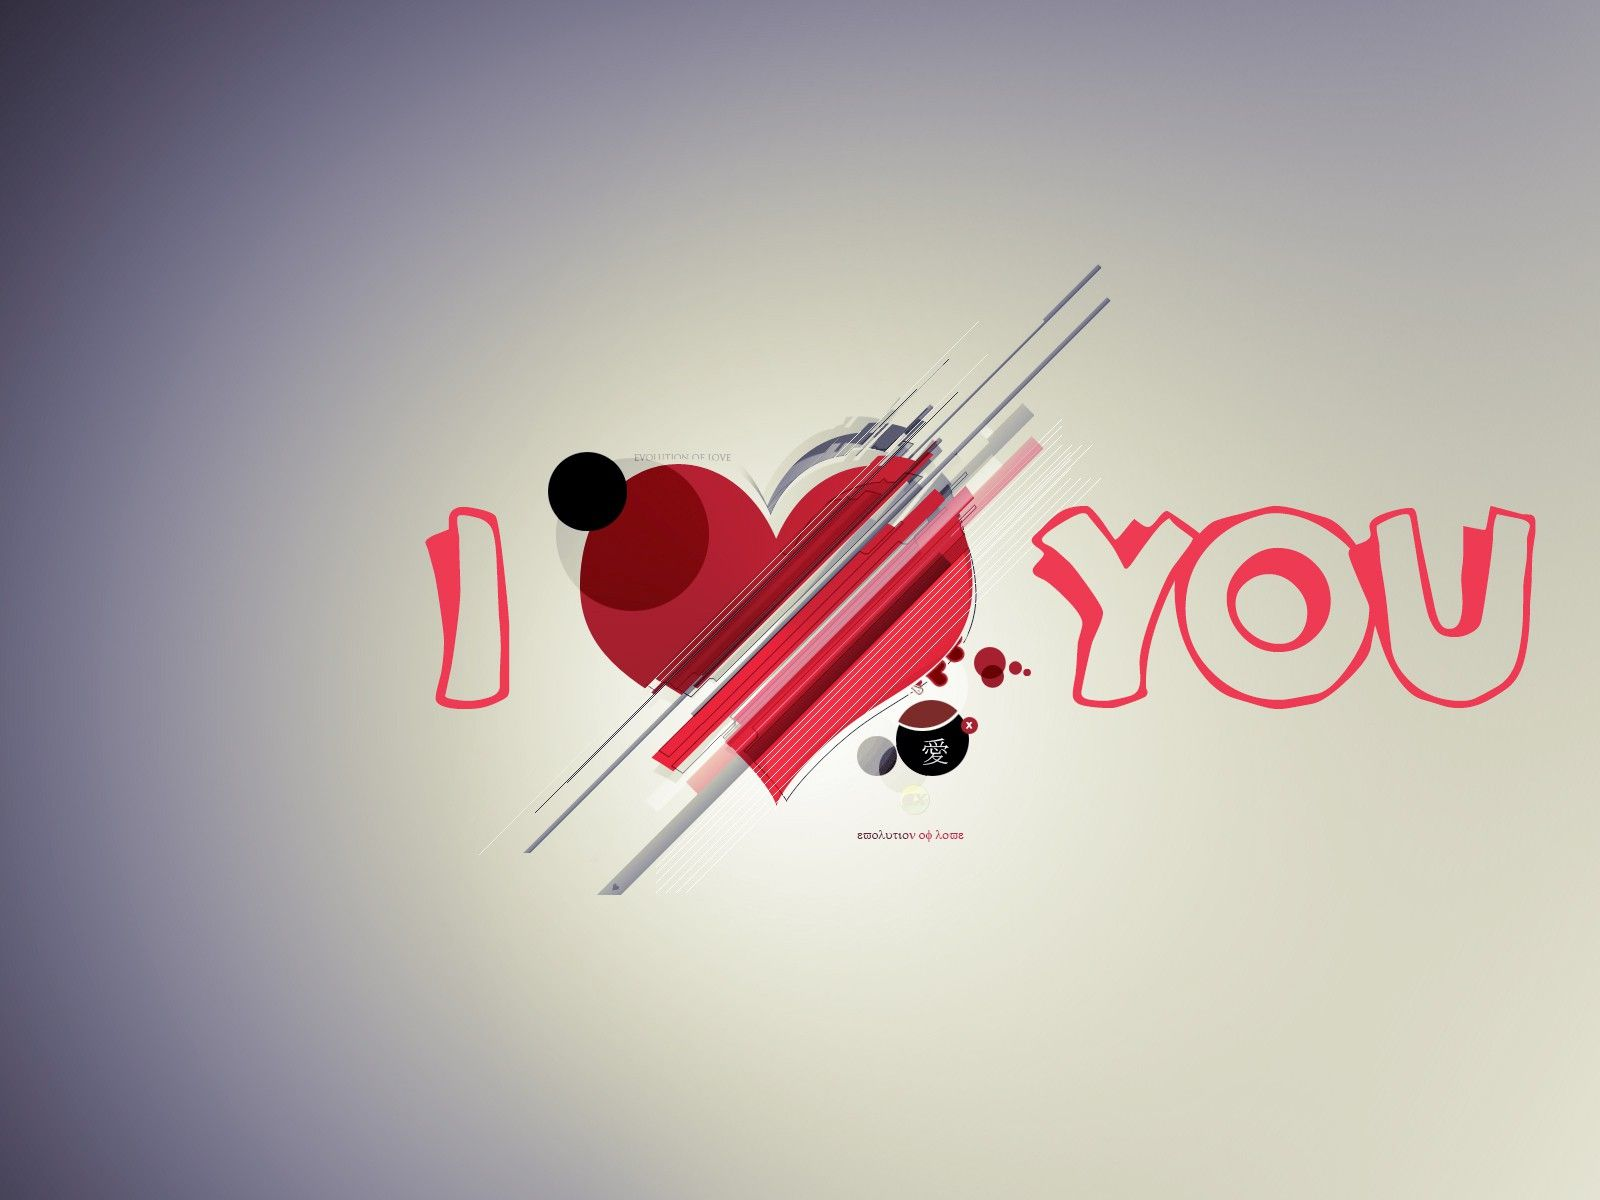 love-images hd wallpapers 3488| cool i love you desktop | amistad